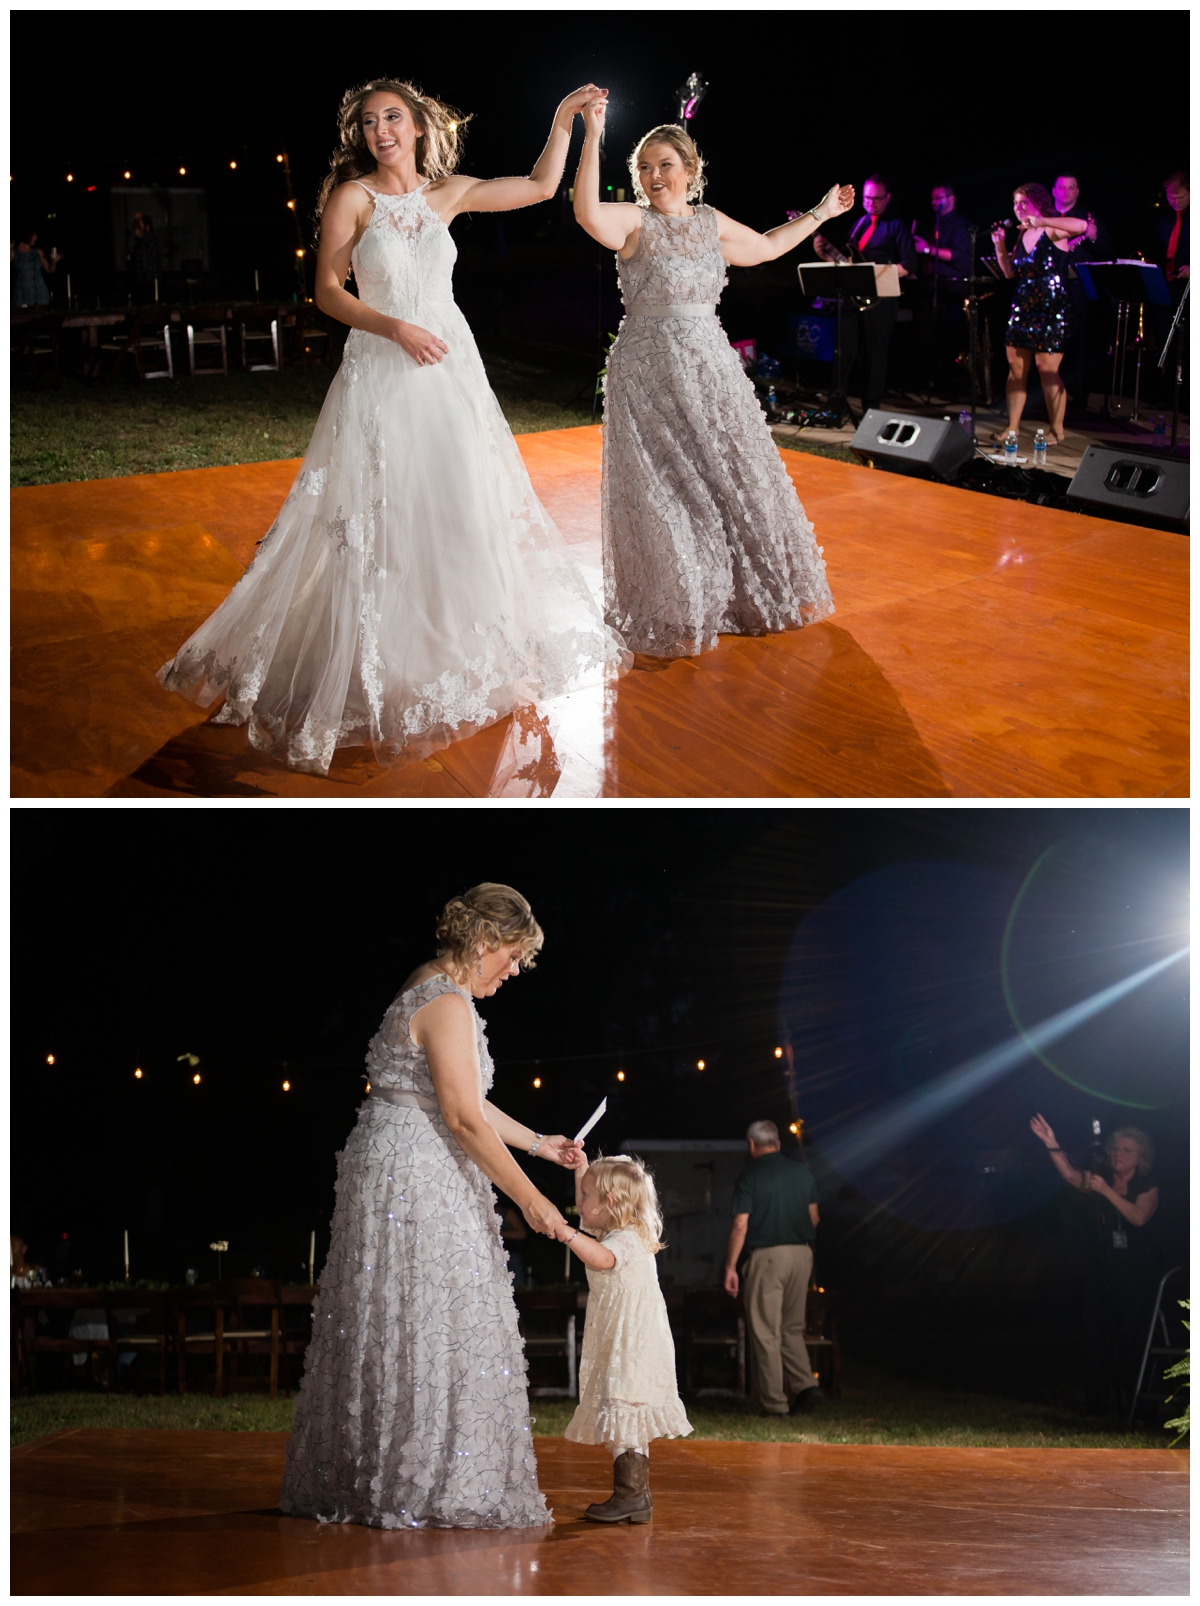 Bride dancing with guests on the dance floor at wedding outside